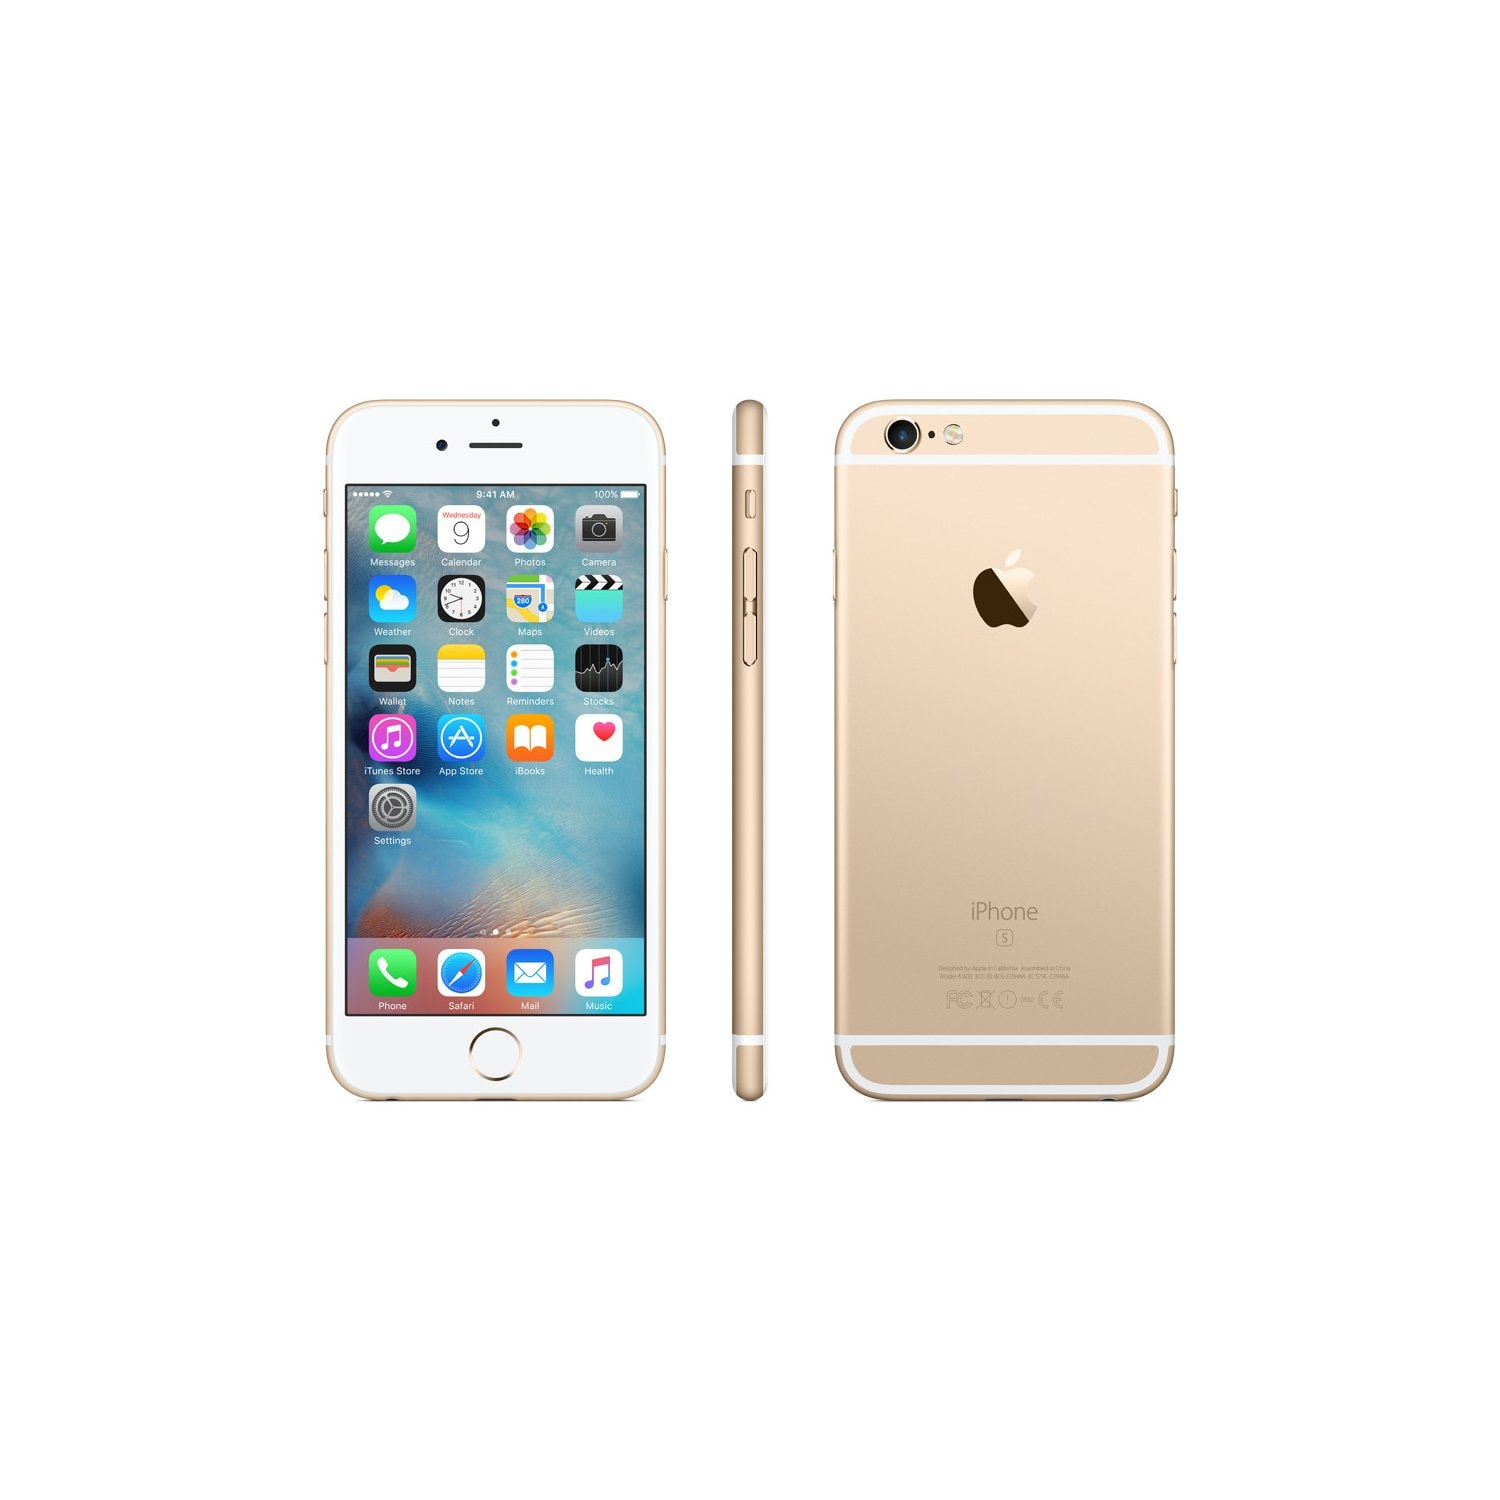 Smartfon APPLE iPhone 6s 16GB Złoty